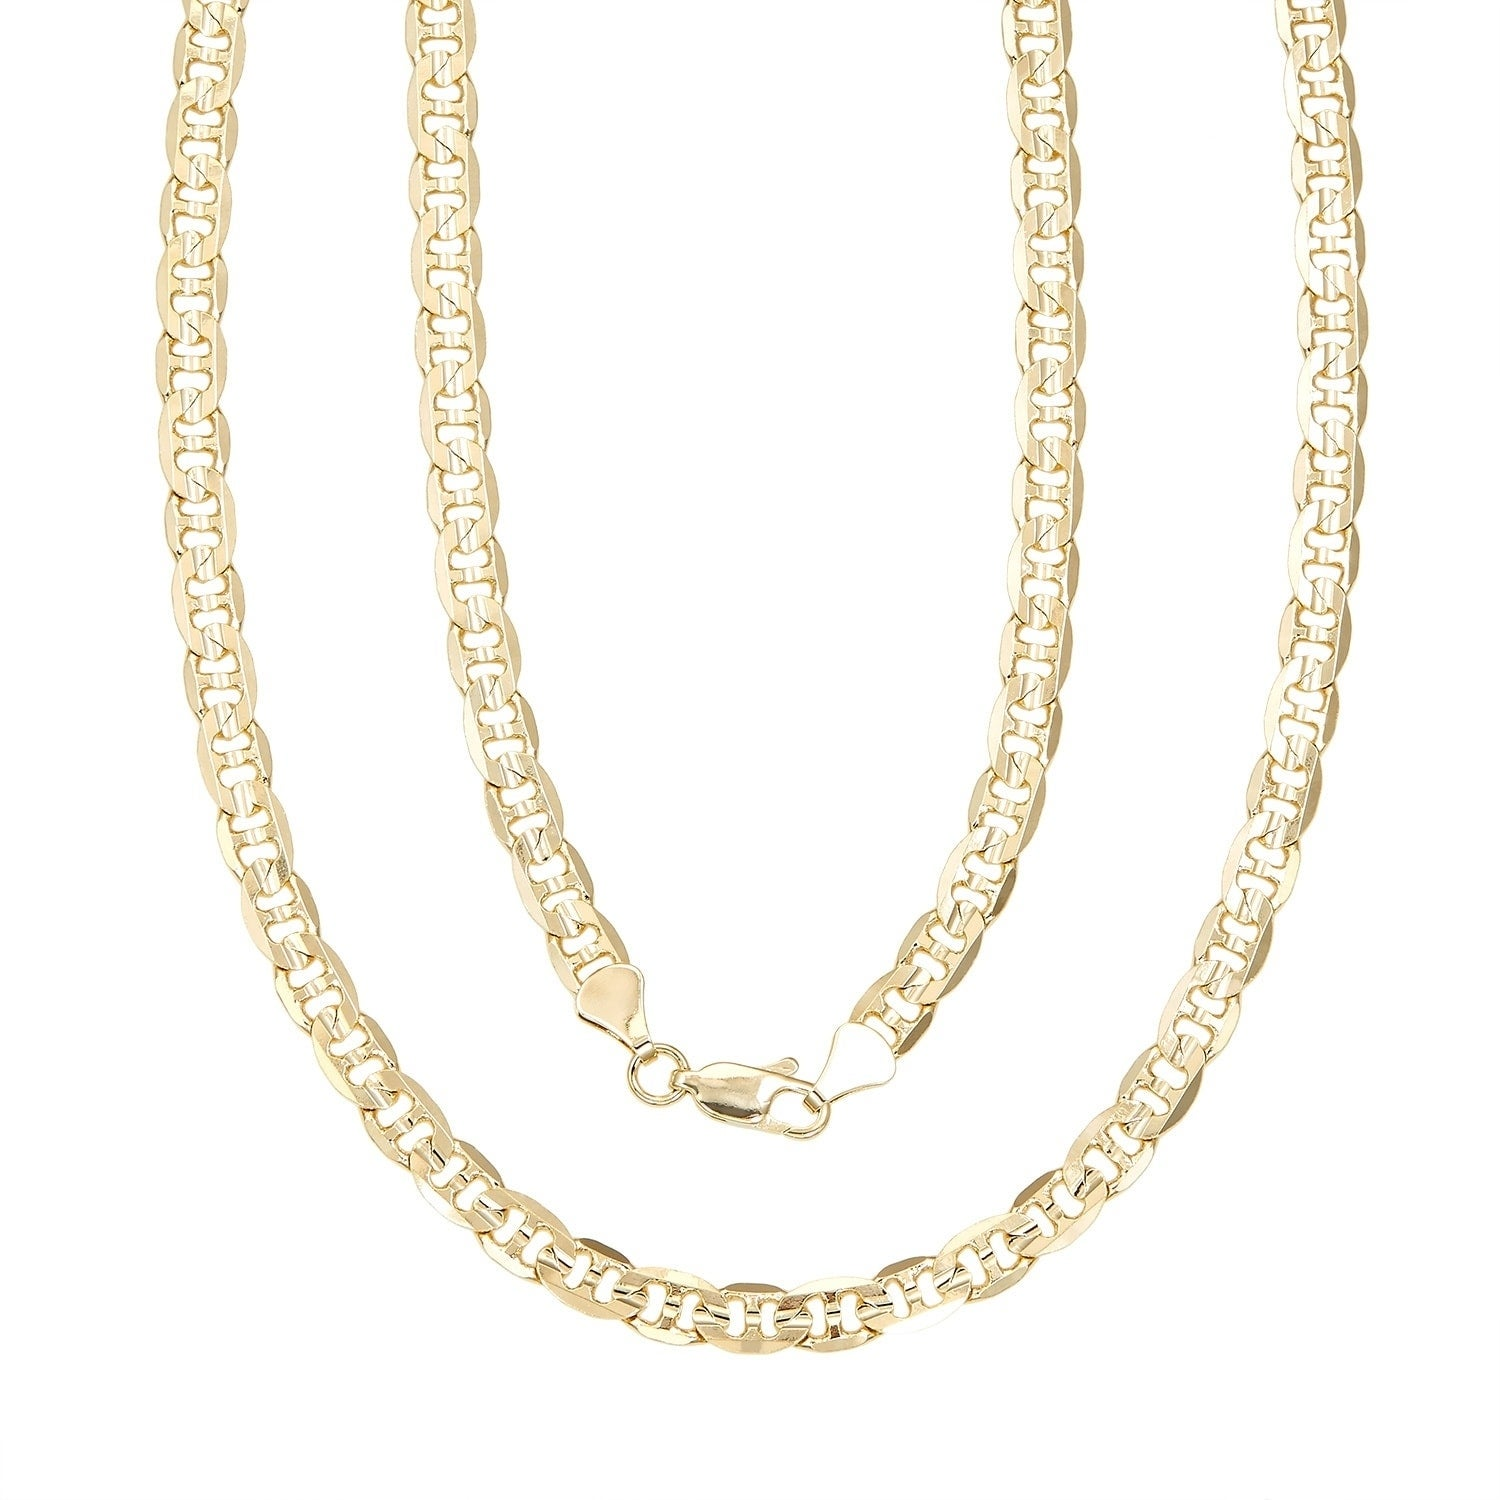 118090d87f6 Shop Simon Frank Gold Overlay 8mm Gucci-style Necklace (30-inch ...